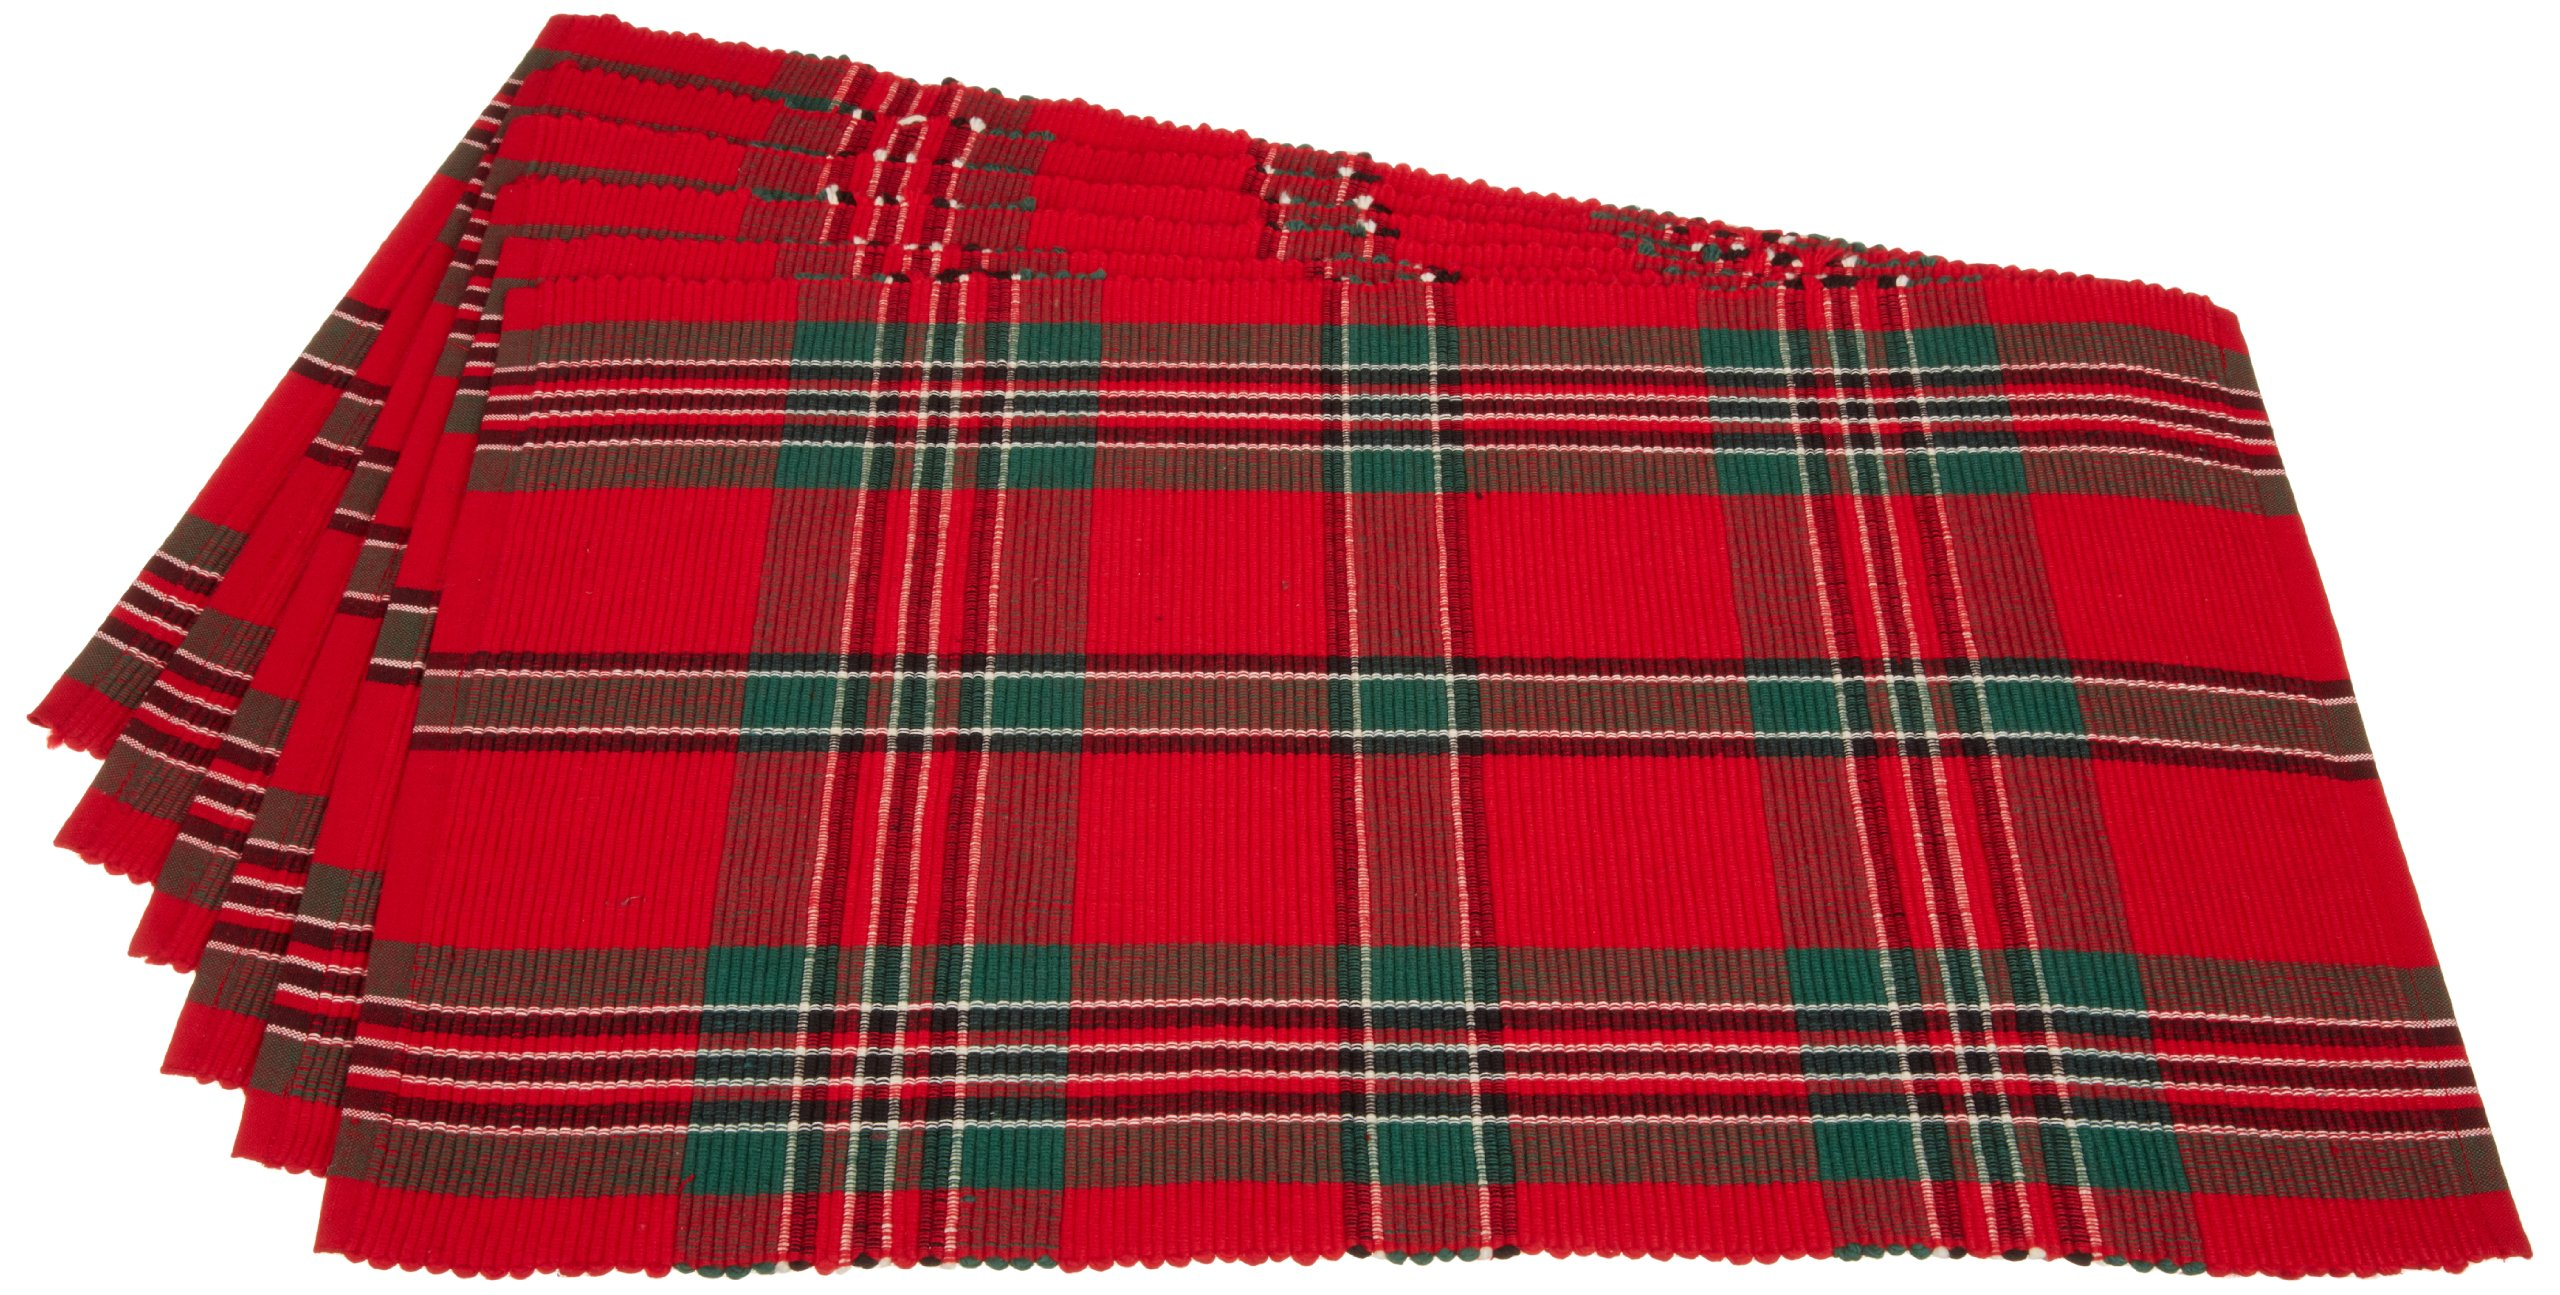 DII 100% Cotton, Ribbed 13x 19'' Everyday Basic Placemat Set of 6, Holiday Plaid by DII